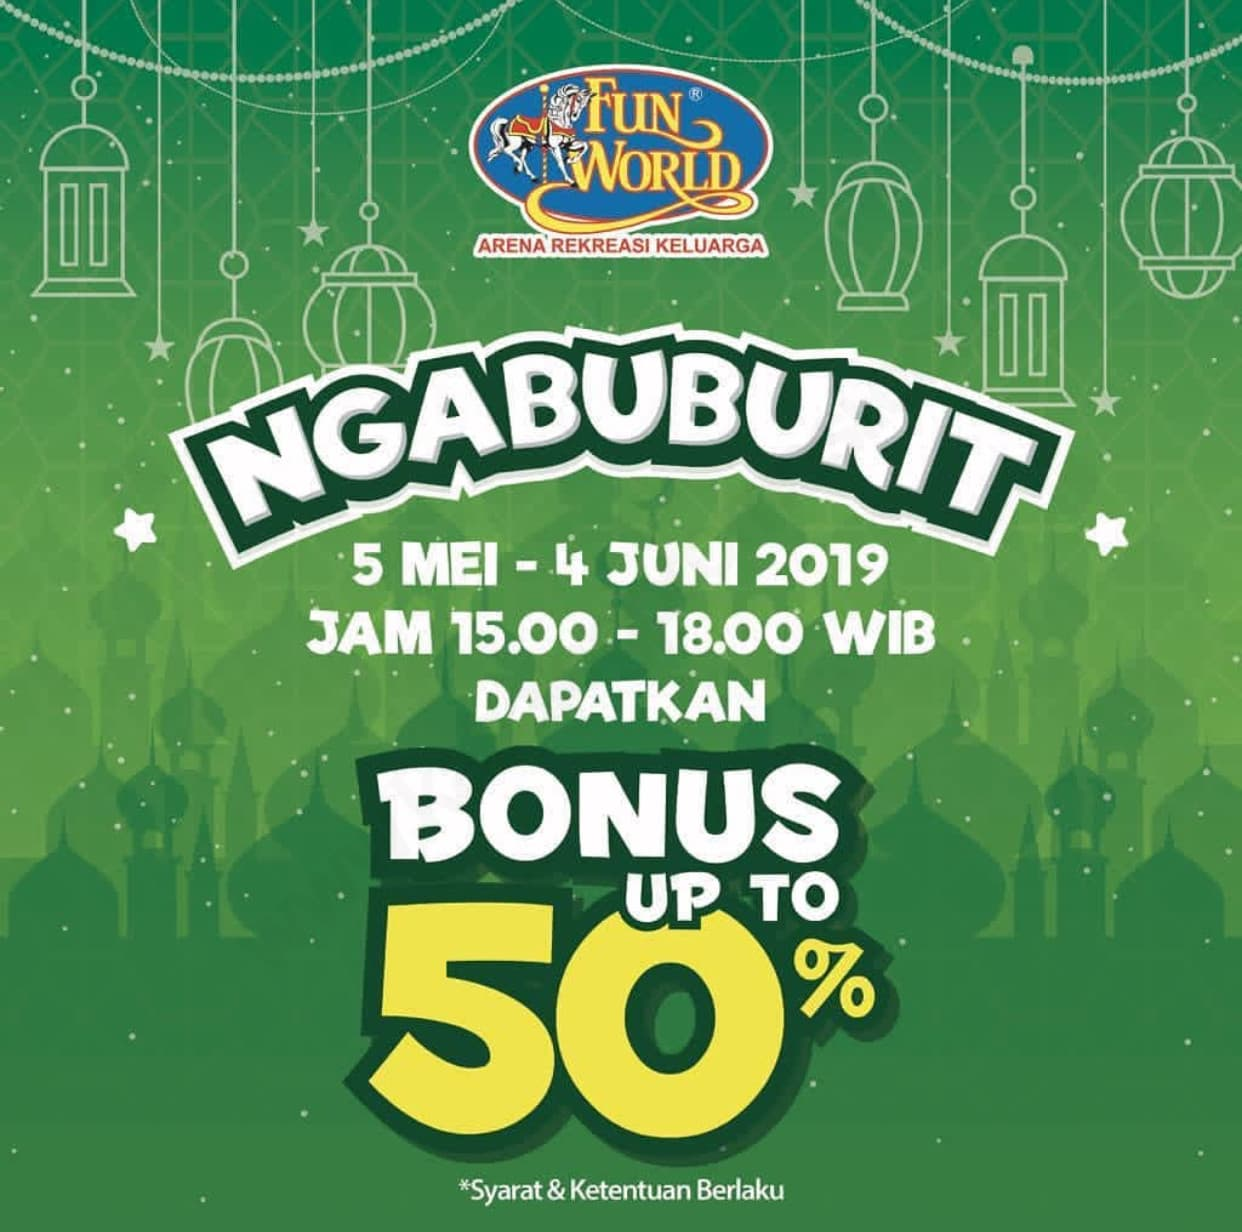 Diskon FUN WORLD Promo NGABUBURIT – Dapatkan Bonus Saldo up to 50%